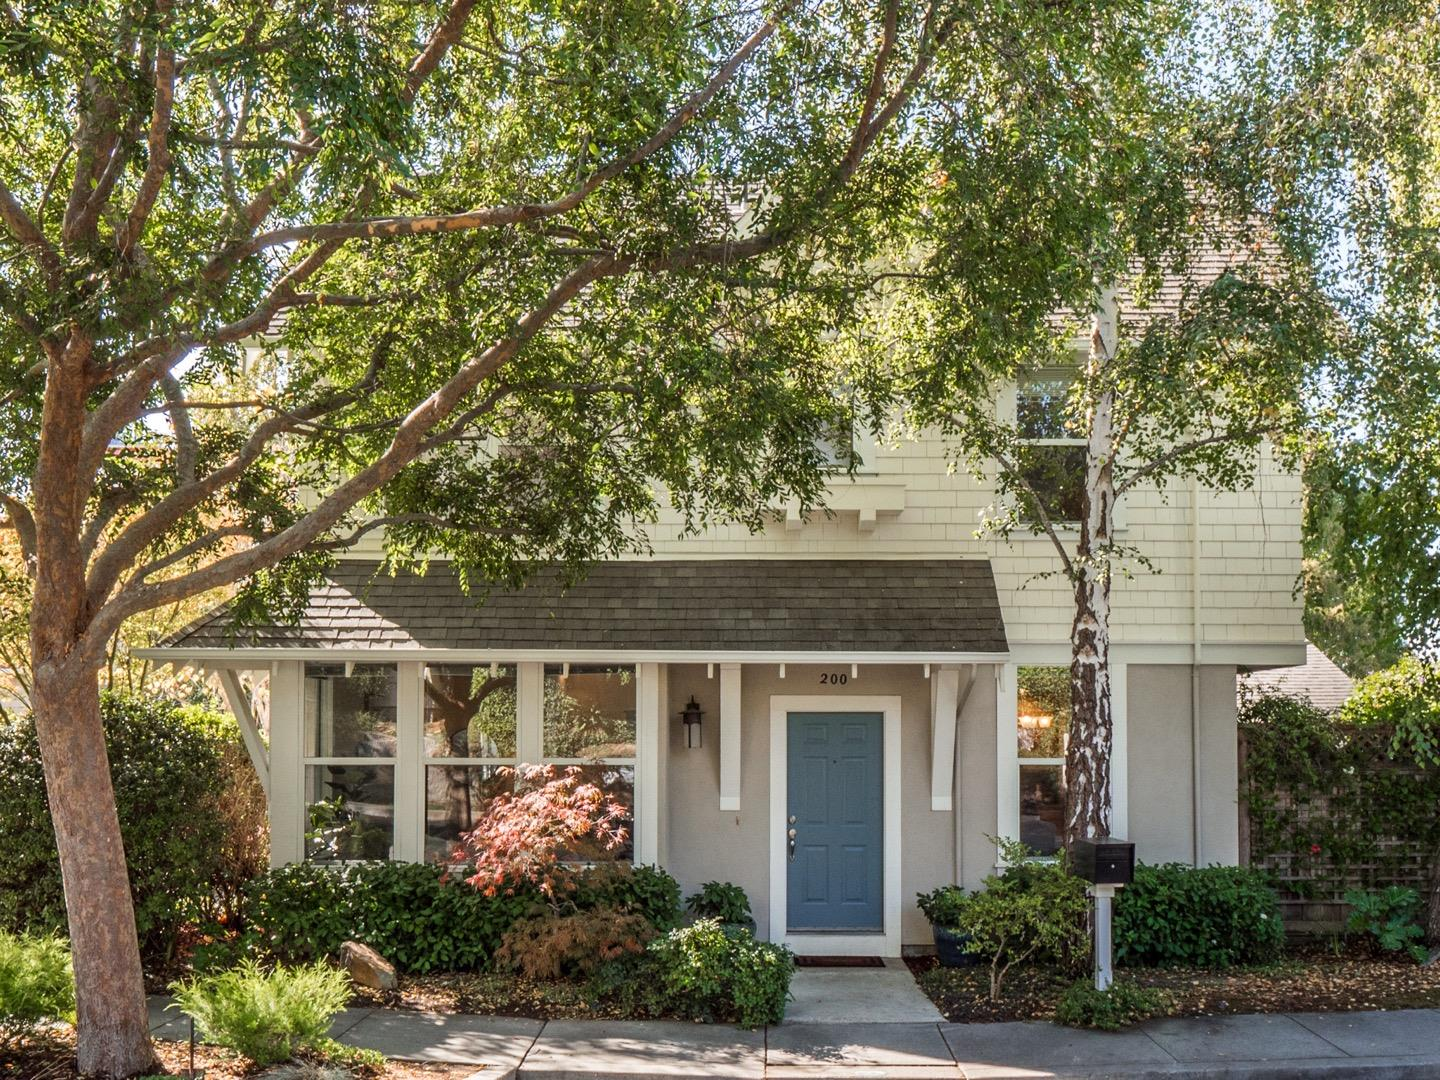 This beautiful little neighborhood with mature trees and landscaping is tucked away from busy streets, but is centrally located close to everything Santa Cruz has to offer.   Less than a mile to Downtown Santa Cruz, The Boardwalk, Seabright Beach, restaurants, local grocery stores, parks and Highway access - everything is at your fingertips.  The well maintained home includes lots of character, natural lighting, new maple hardwood flooring and carpets, high-efficiency heating system, upgraded kitchen and finishings, crown moulding and your own private garden to entertain or enjoy the sunshine.   With spacious bedrooms, vaulted ceilings and cozy living room fireplace, this comfortable home is an oasis just minutes to the sand and waves.